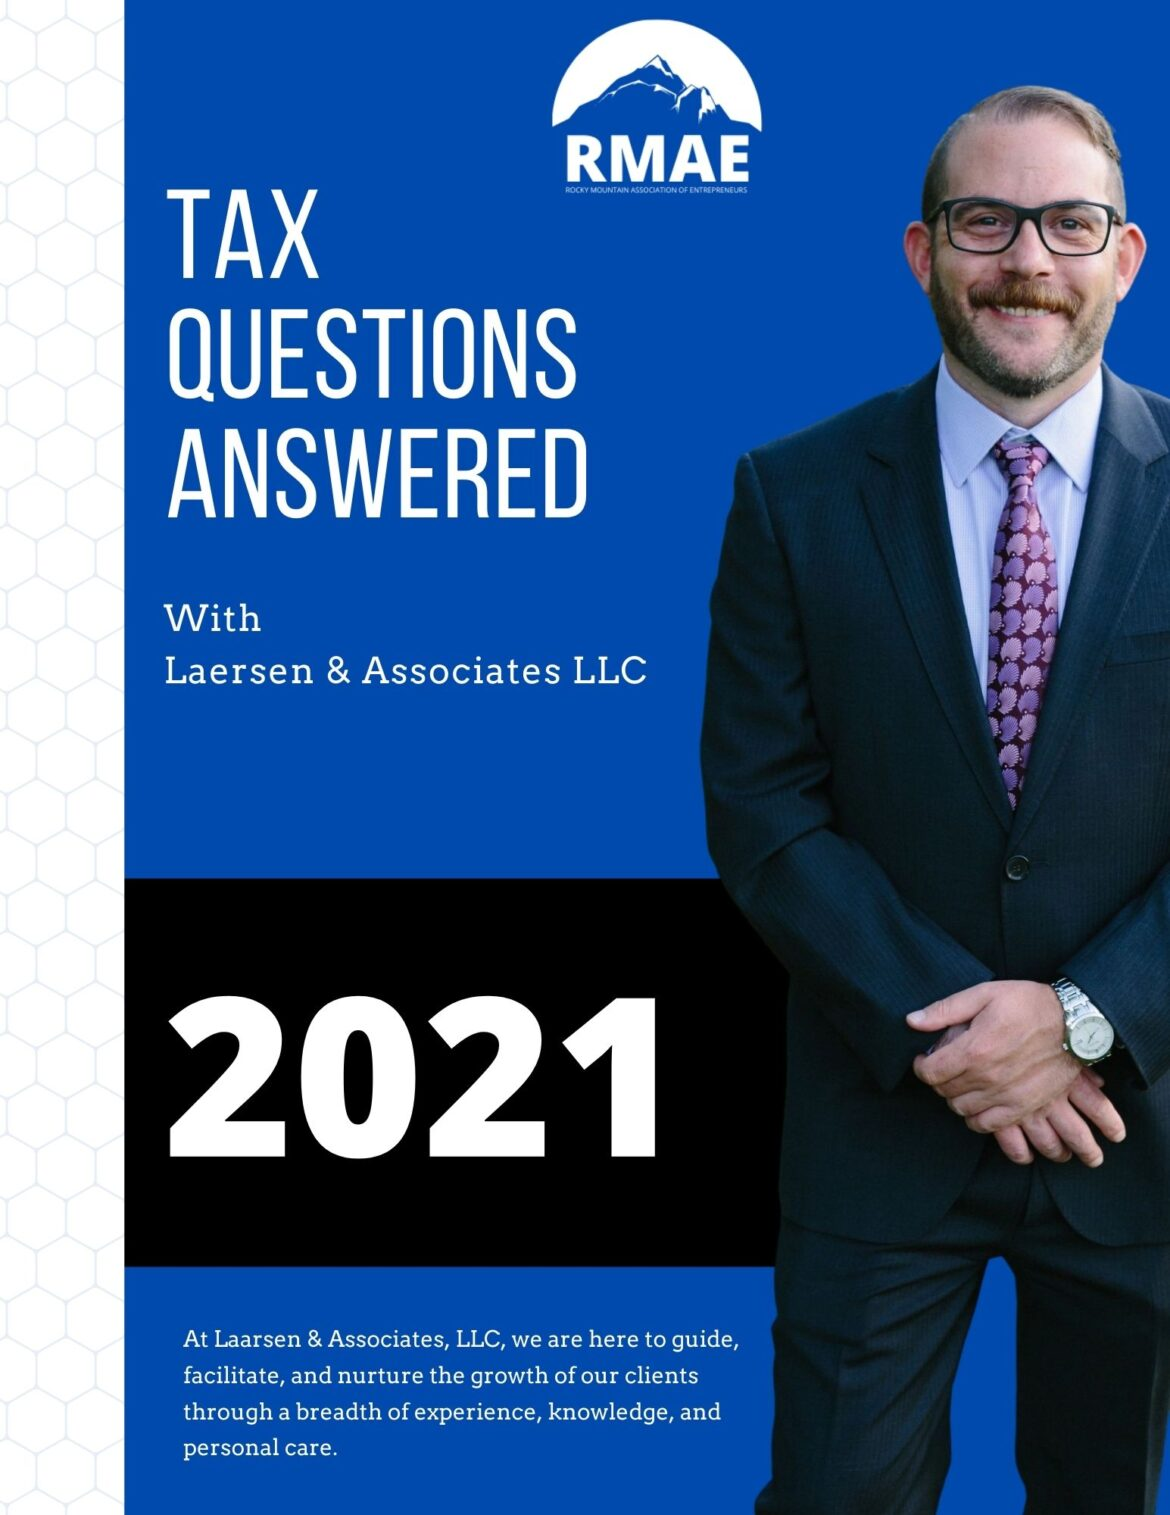 Tax questions answered